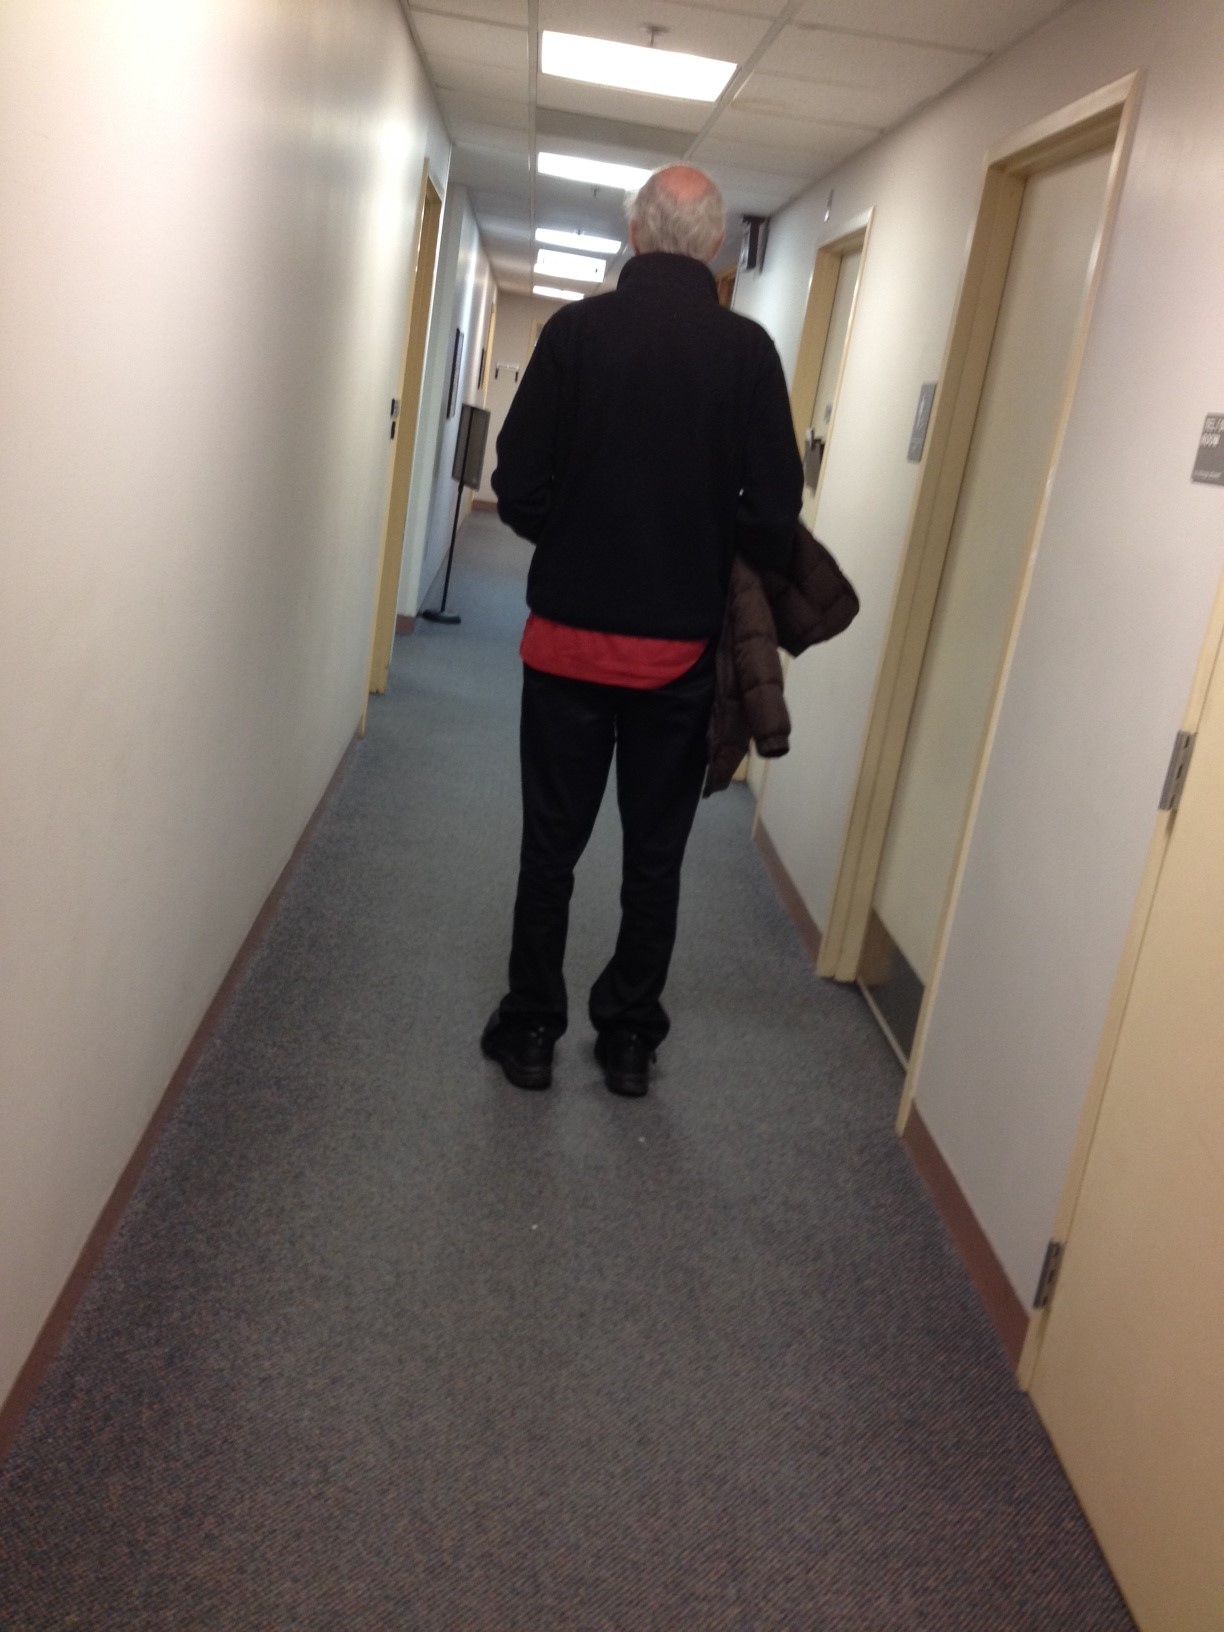 Back view of older man walking down medical hallway with a woman's coat under his arm